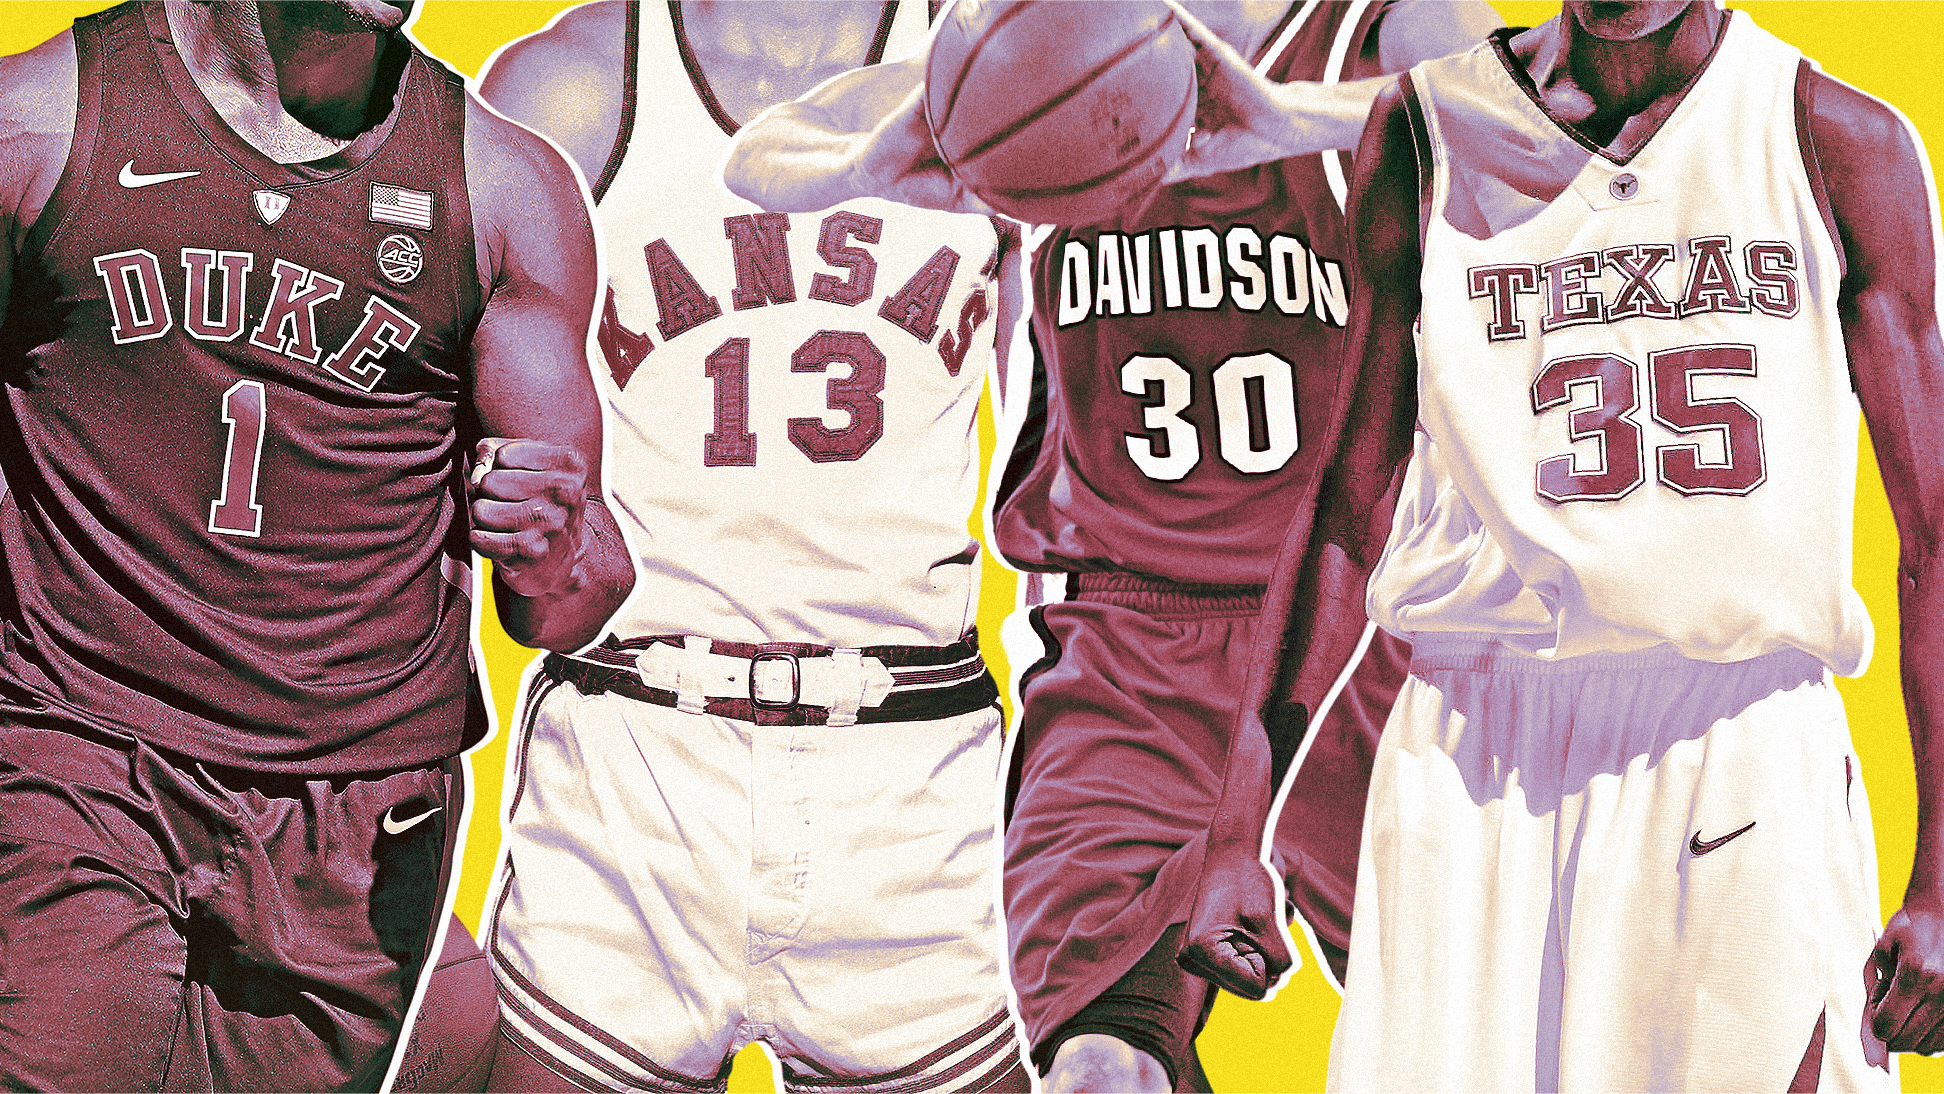 The best player in college basketball history at every jersey number